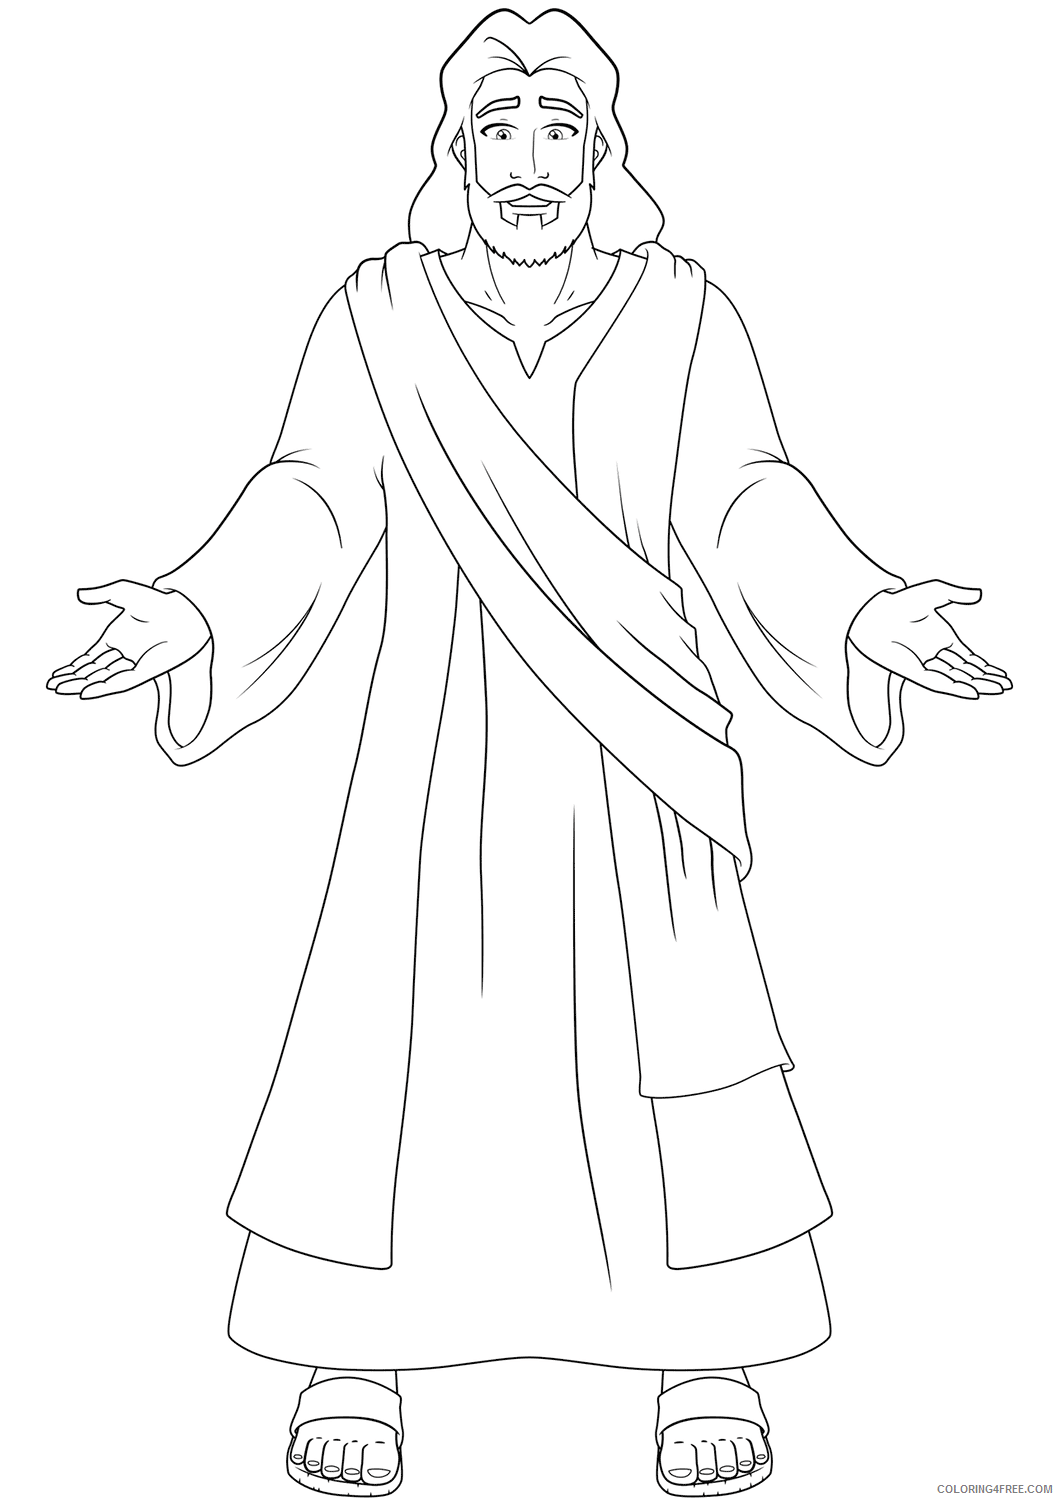 Jesus Coloring Pages jesus with open hands Printable 2021 3592 Coloring4free